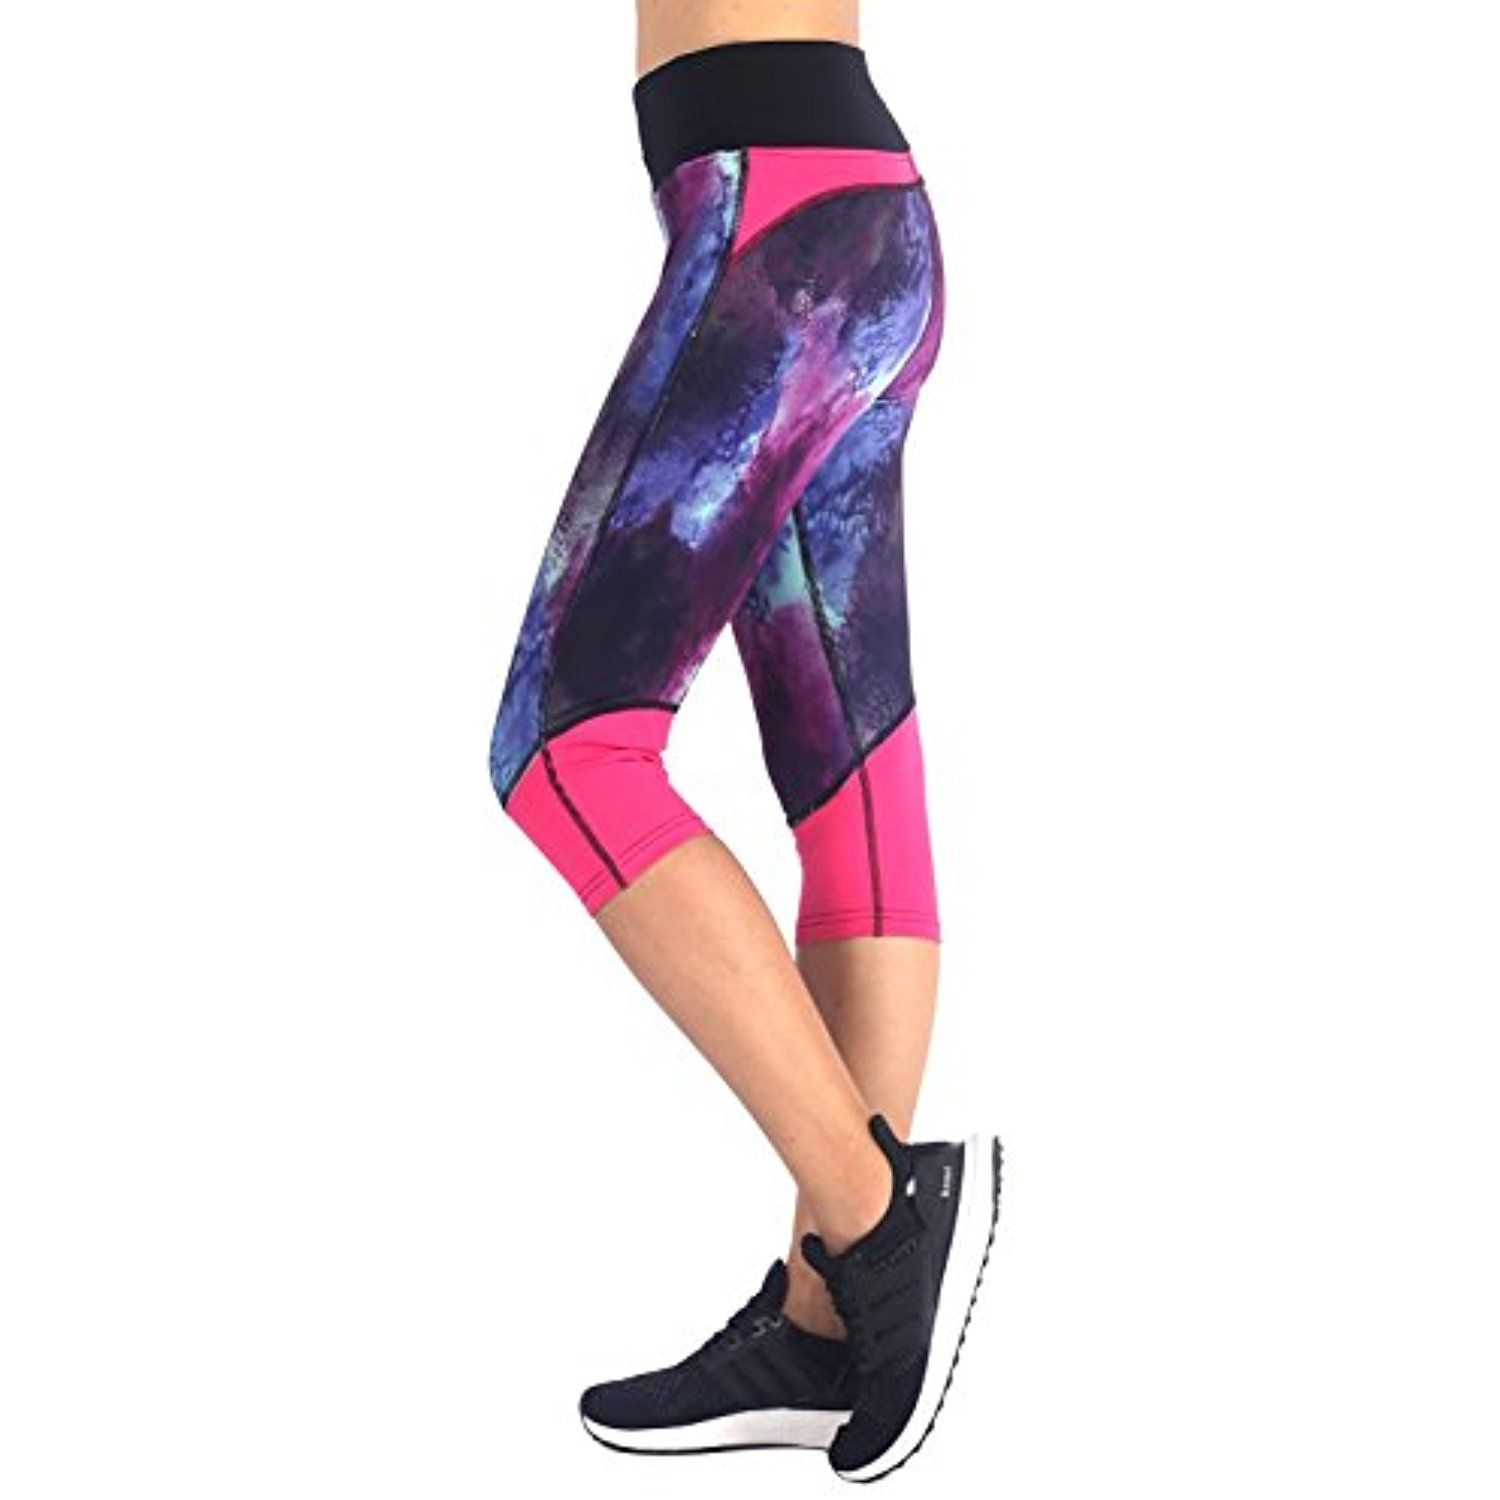 1287332b9e703 Neonysweets Womens Printed Capri Yoga Pants Active Workout Tights Stretchy  >>> You can get more details by clicking on the image. (This is an  affiliate link ...